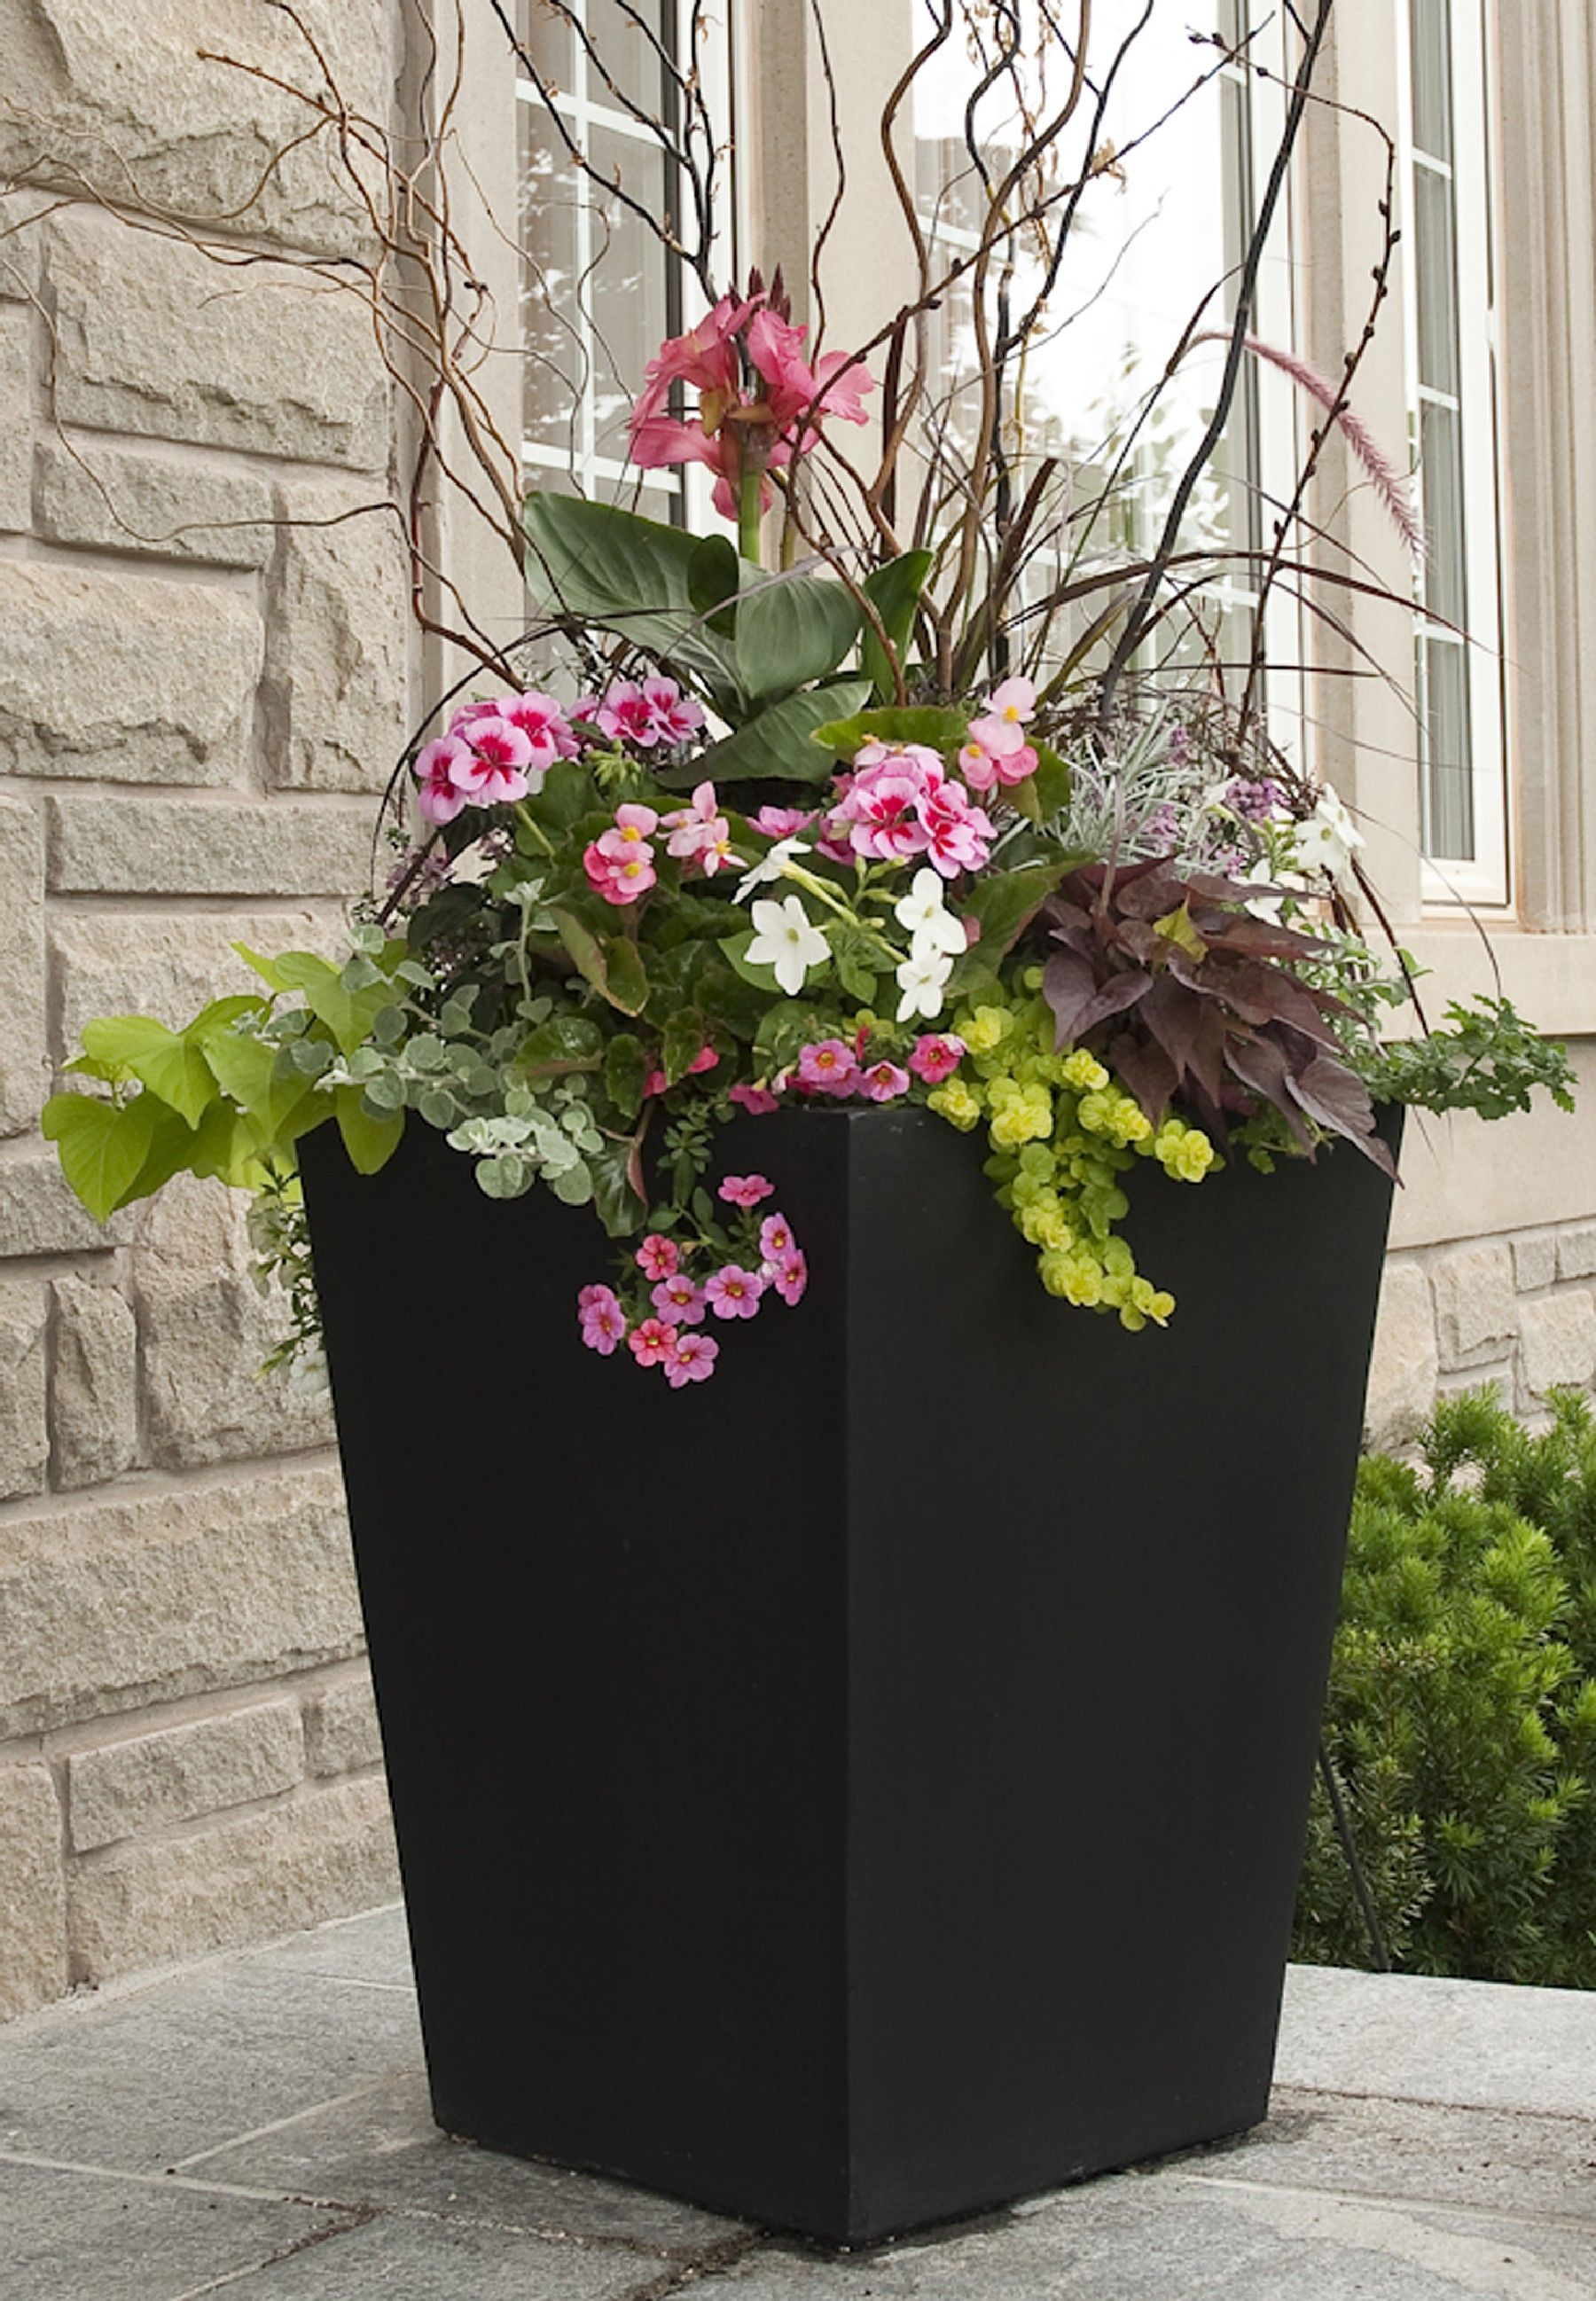 Best 15 Stunning Summer Planter Ideas to Beautify Your